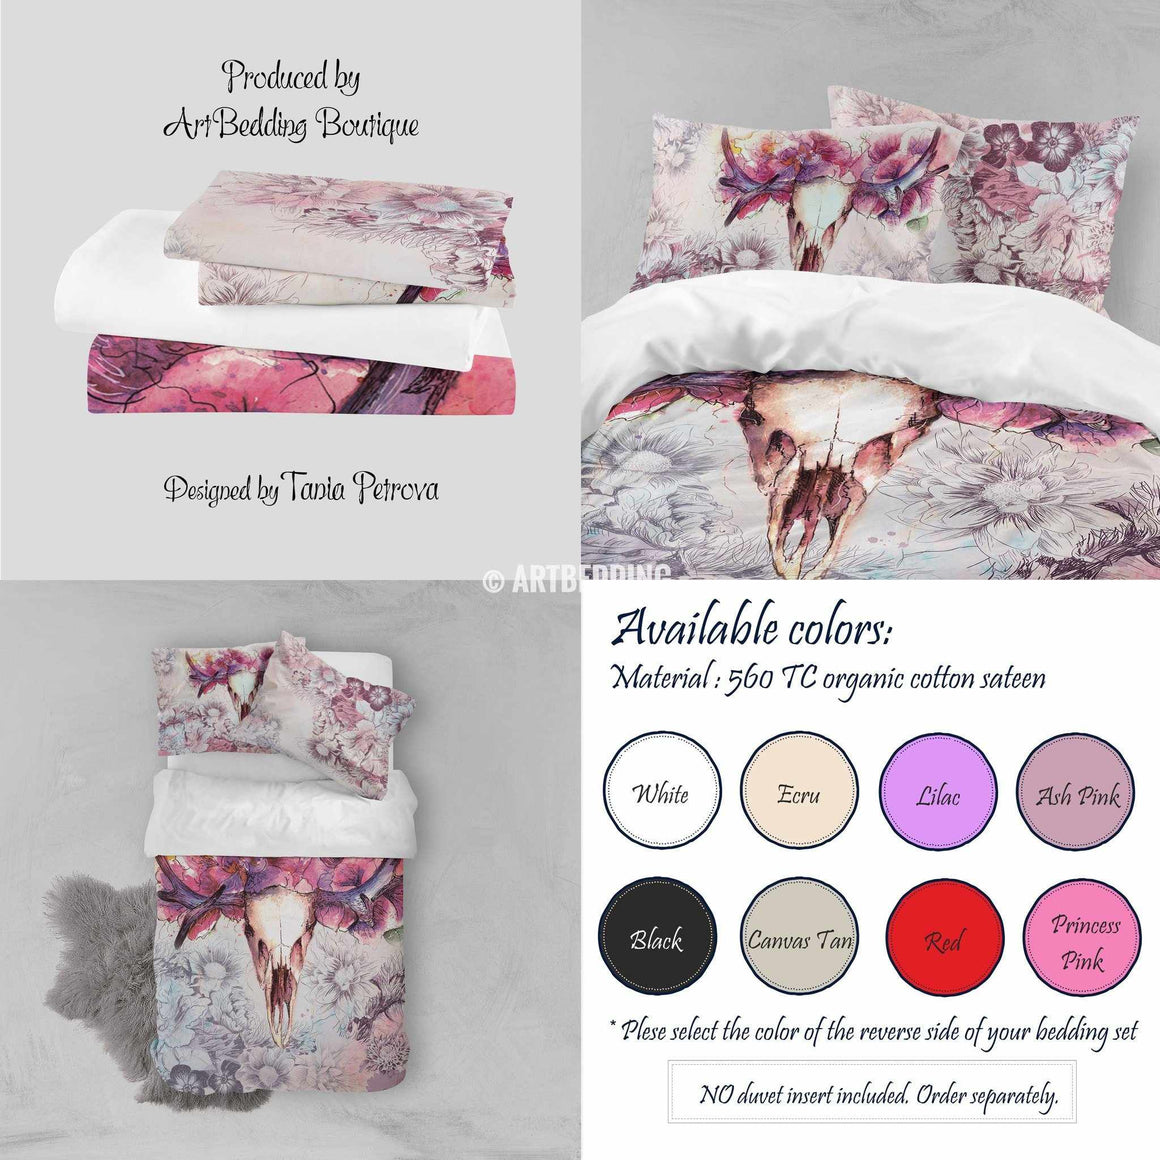 Deer skull Totem bedding set, Watercolor deer skull totem duvet bedding set, Spiritual bohemian bedding, boho totem bedspread, artbedding Bedding set